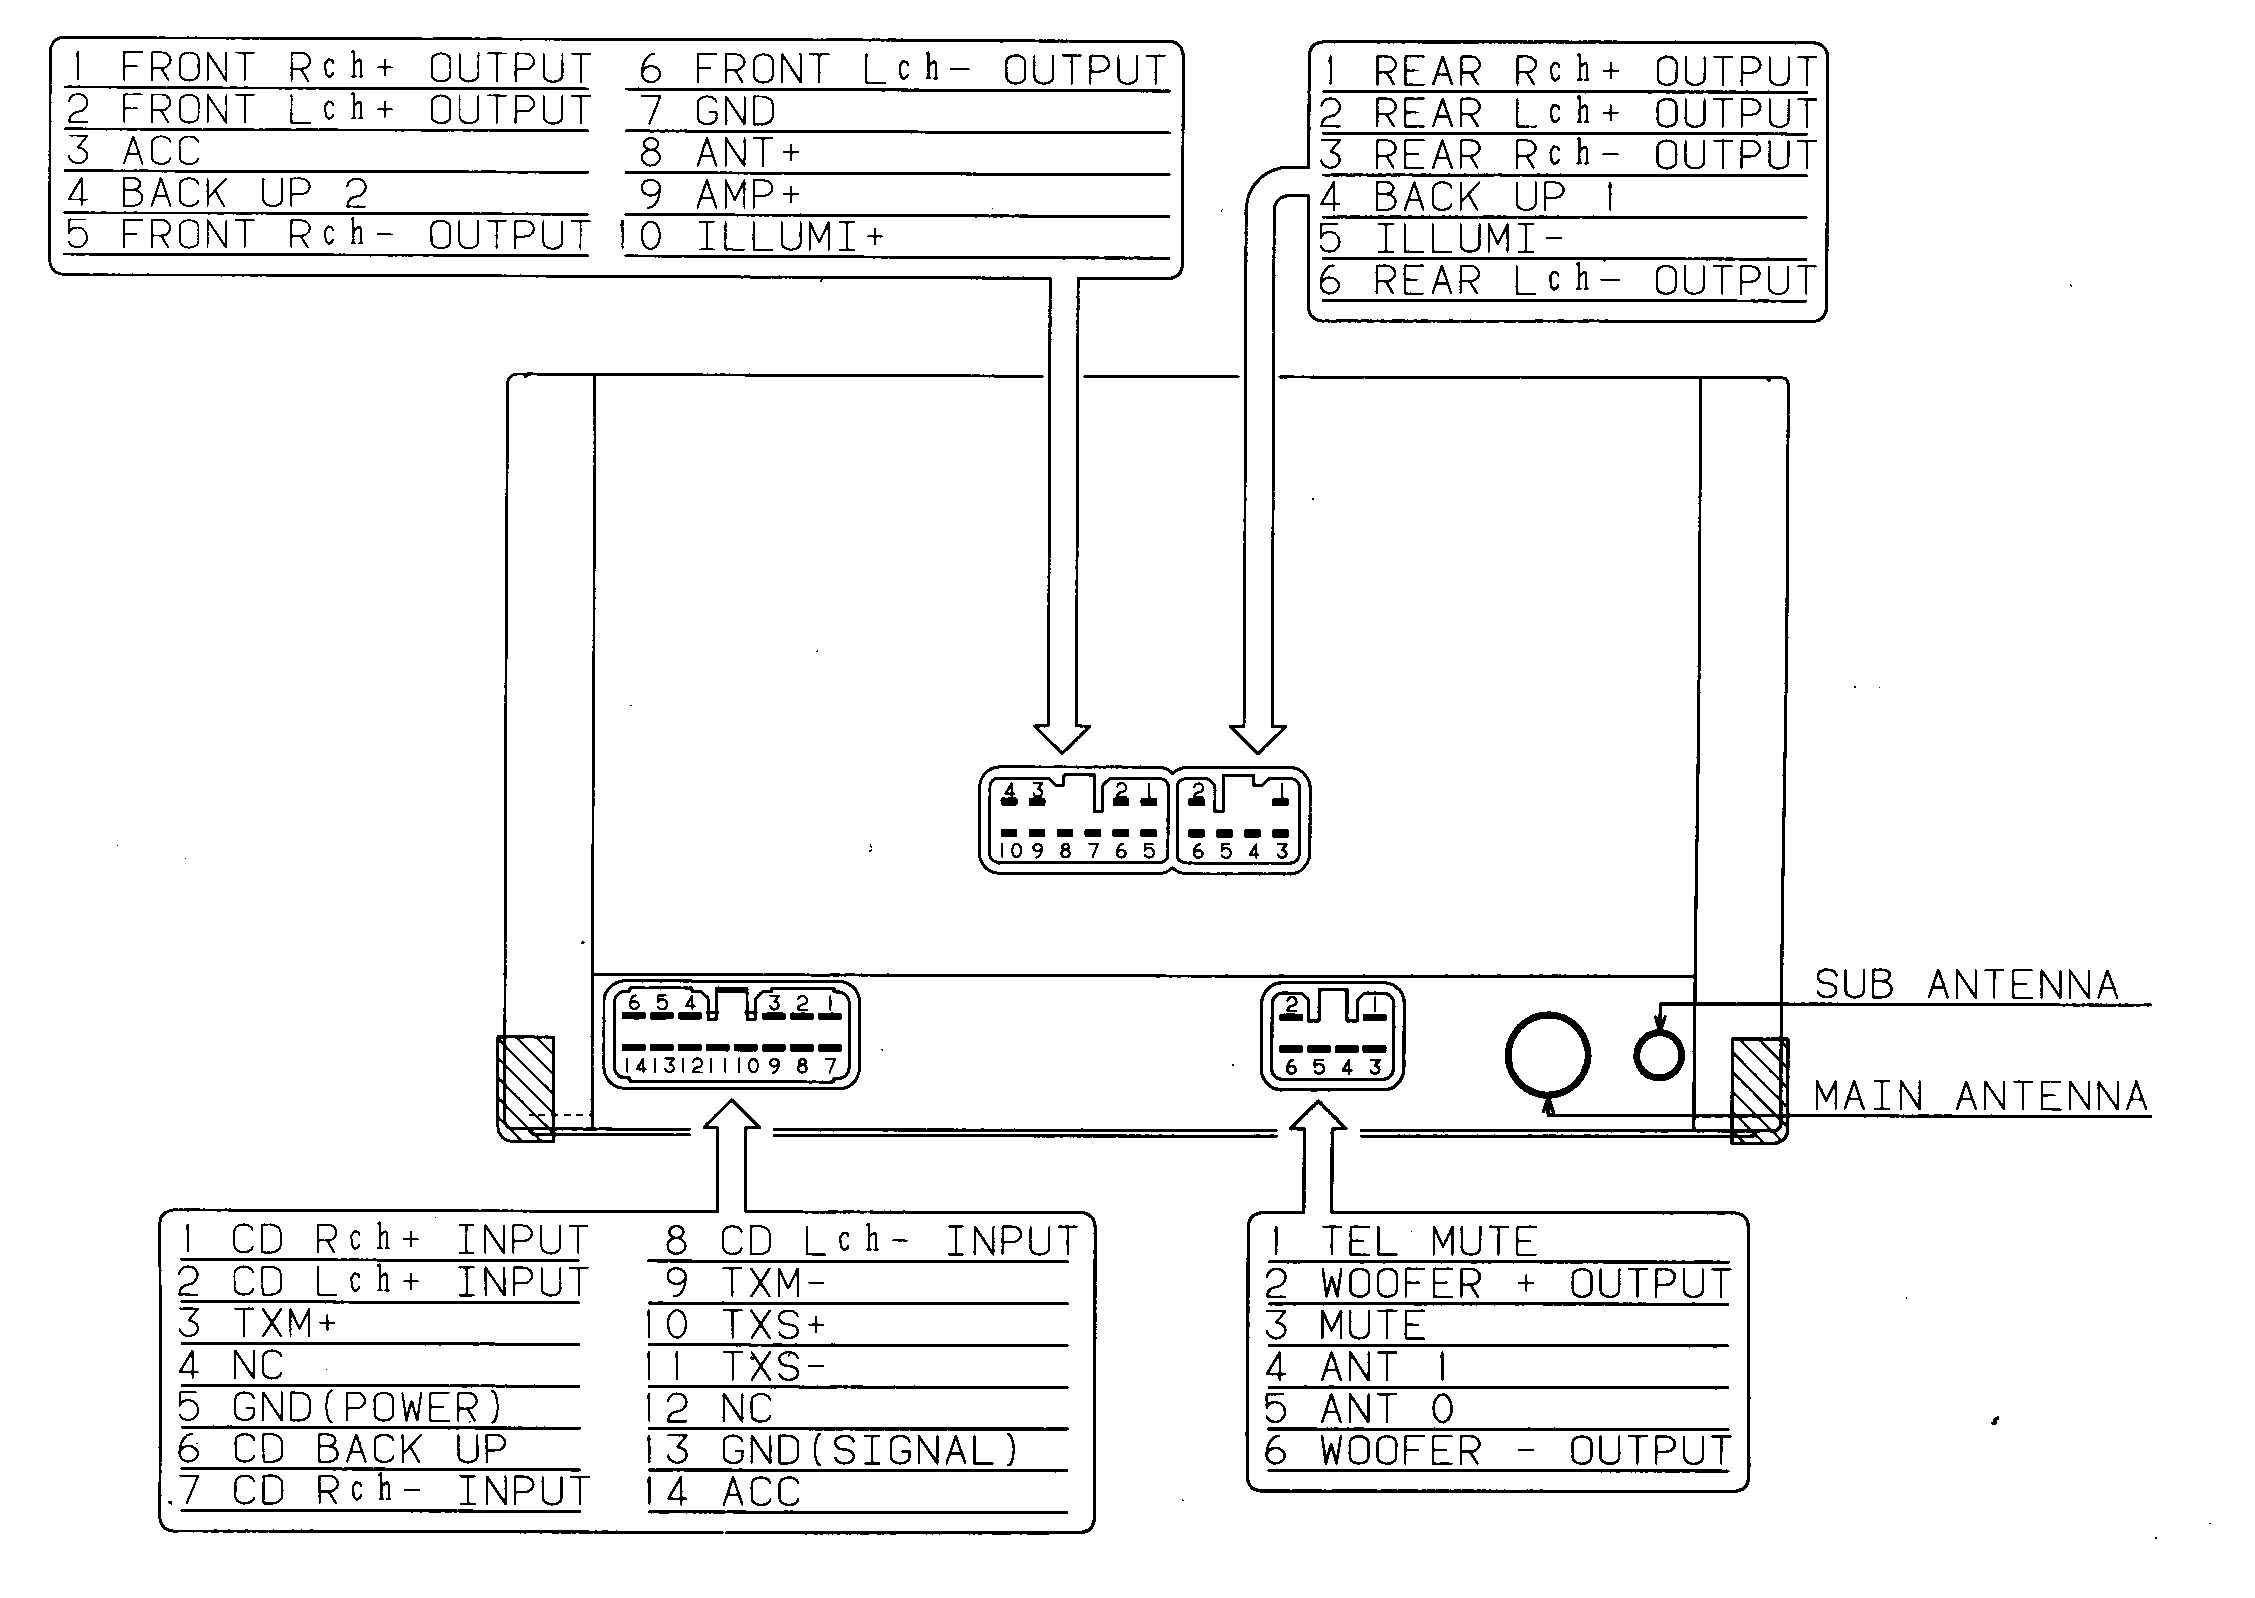 2003 Saab 9 3 Stereo Wiring Diagram 2002 Mustang Inside Fuse Box Diagram For Wiring Diagram Schematics